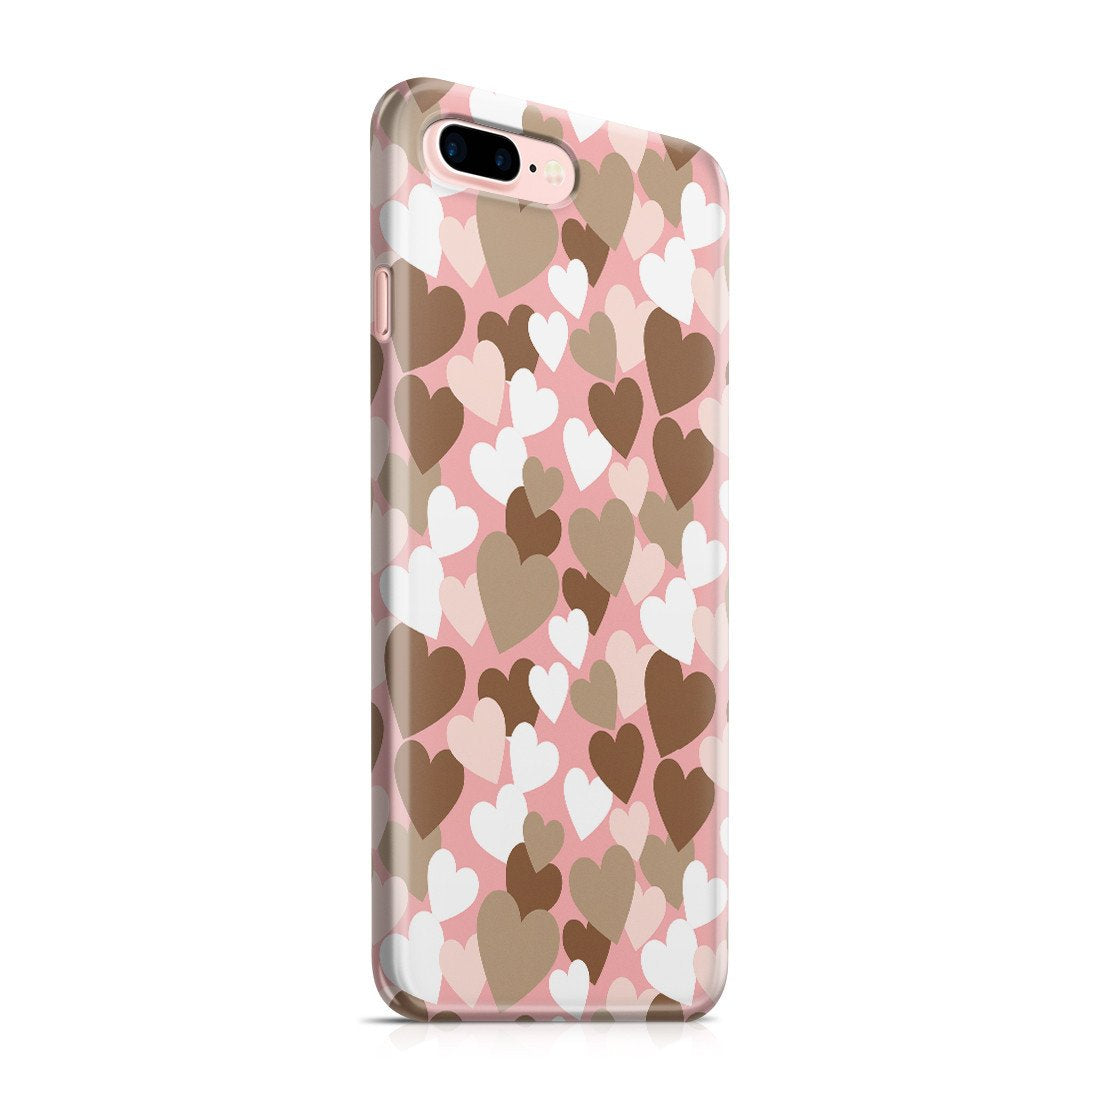 super popular cd023 a3a22 iPhone 8 Plus Case - My Heart Beats for You